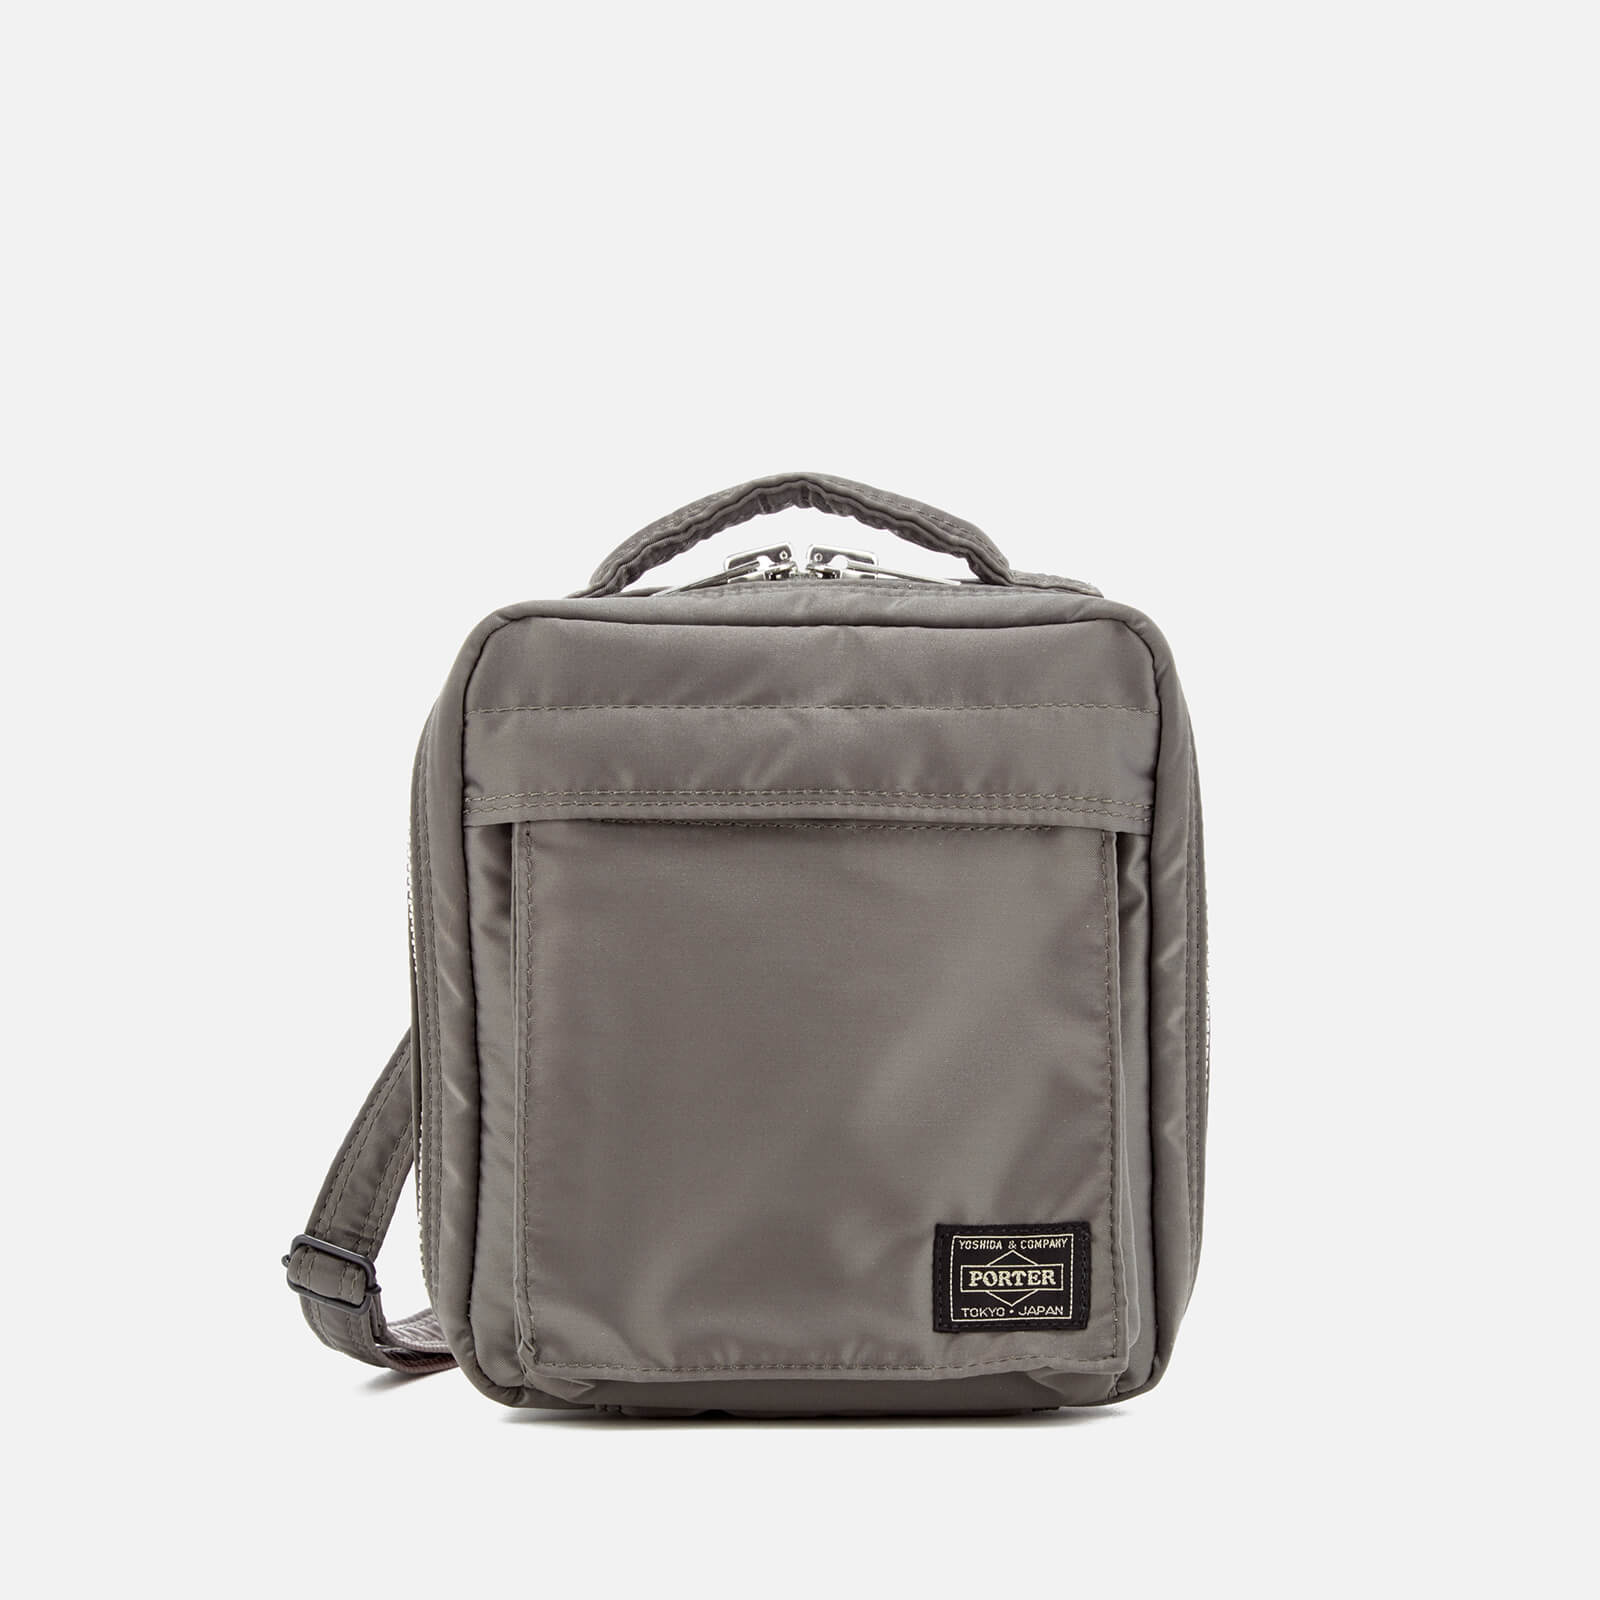 69e1049c67 Men s Tanker Shoulder Bag - Grey Porter-Yoshida   Co. Men s Tanker Shoulder  Bag - Grey